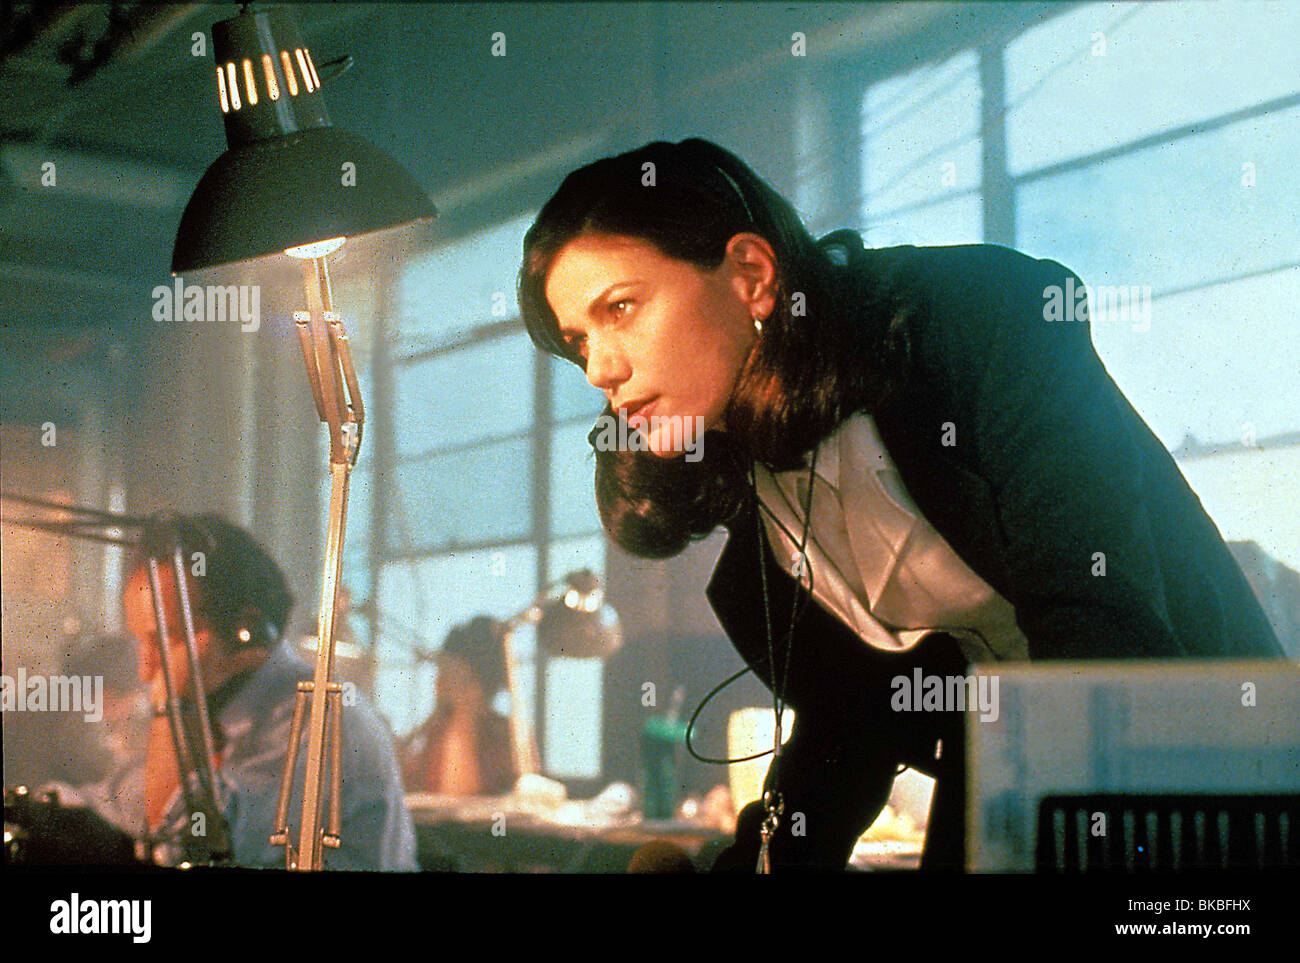 THE LAST SEDUCTION (1994) LINDA FIORENTINO CREDIT ITC (LISTINGS ONLY) LSED 049 - Stock Image